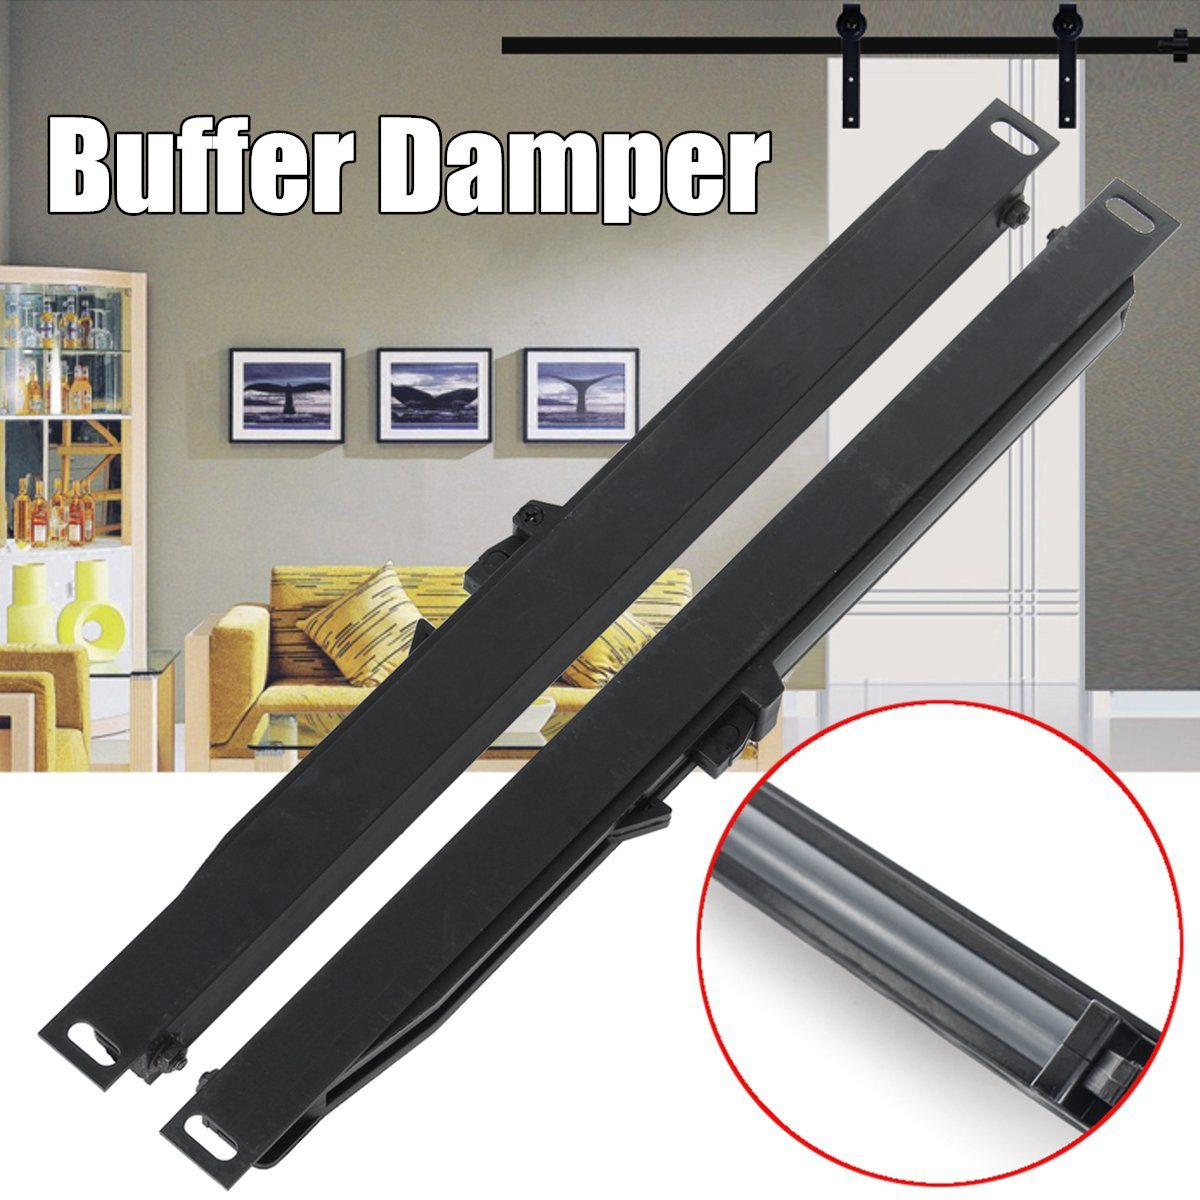 Any Side Sliding Barn Door Hardware Soft Close Drawer Slide Track Buffer Damper soft close mechanism furniture remission accessory for sliding barn wood door hardware